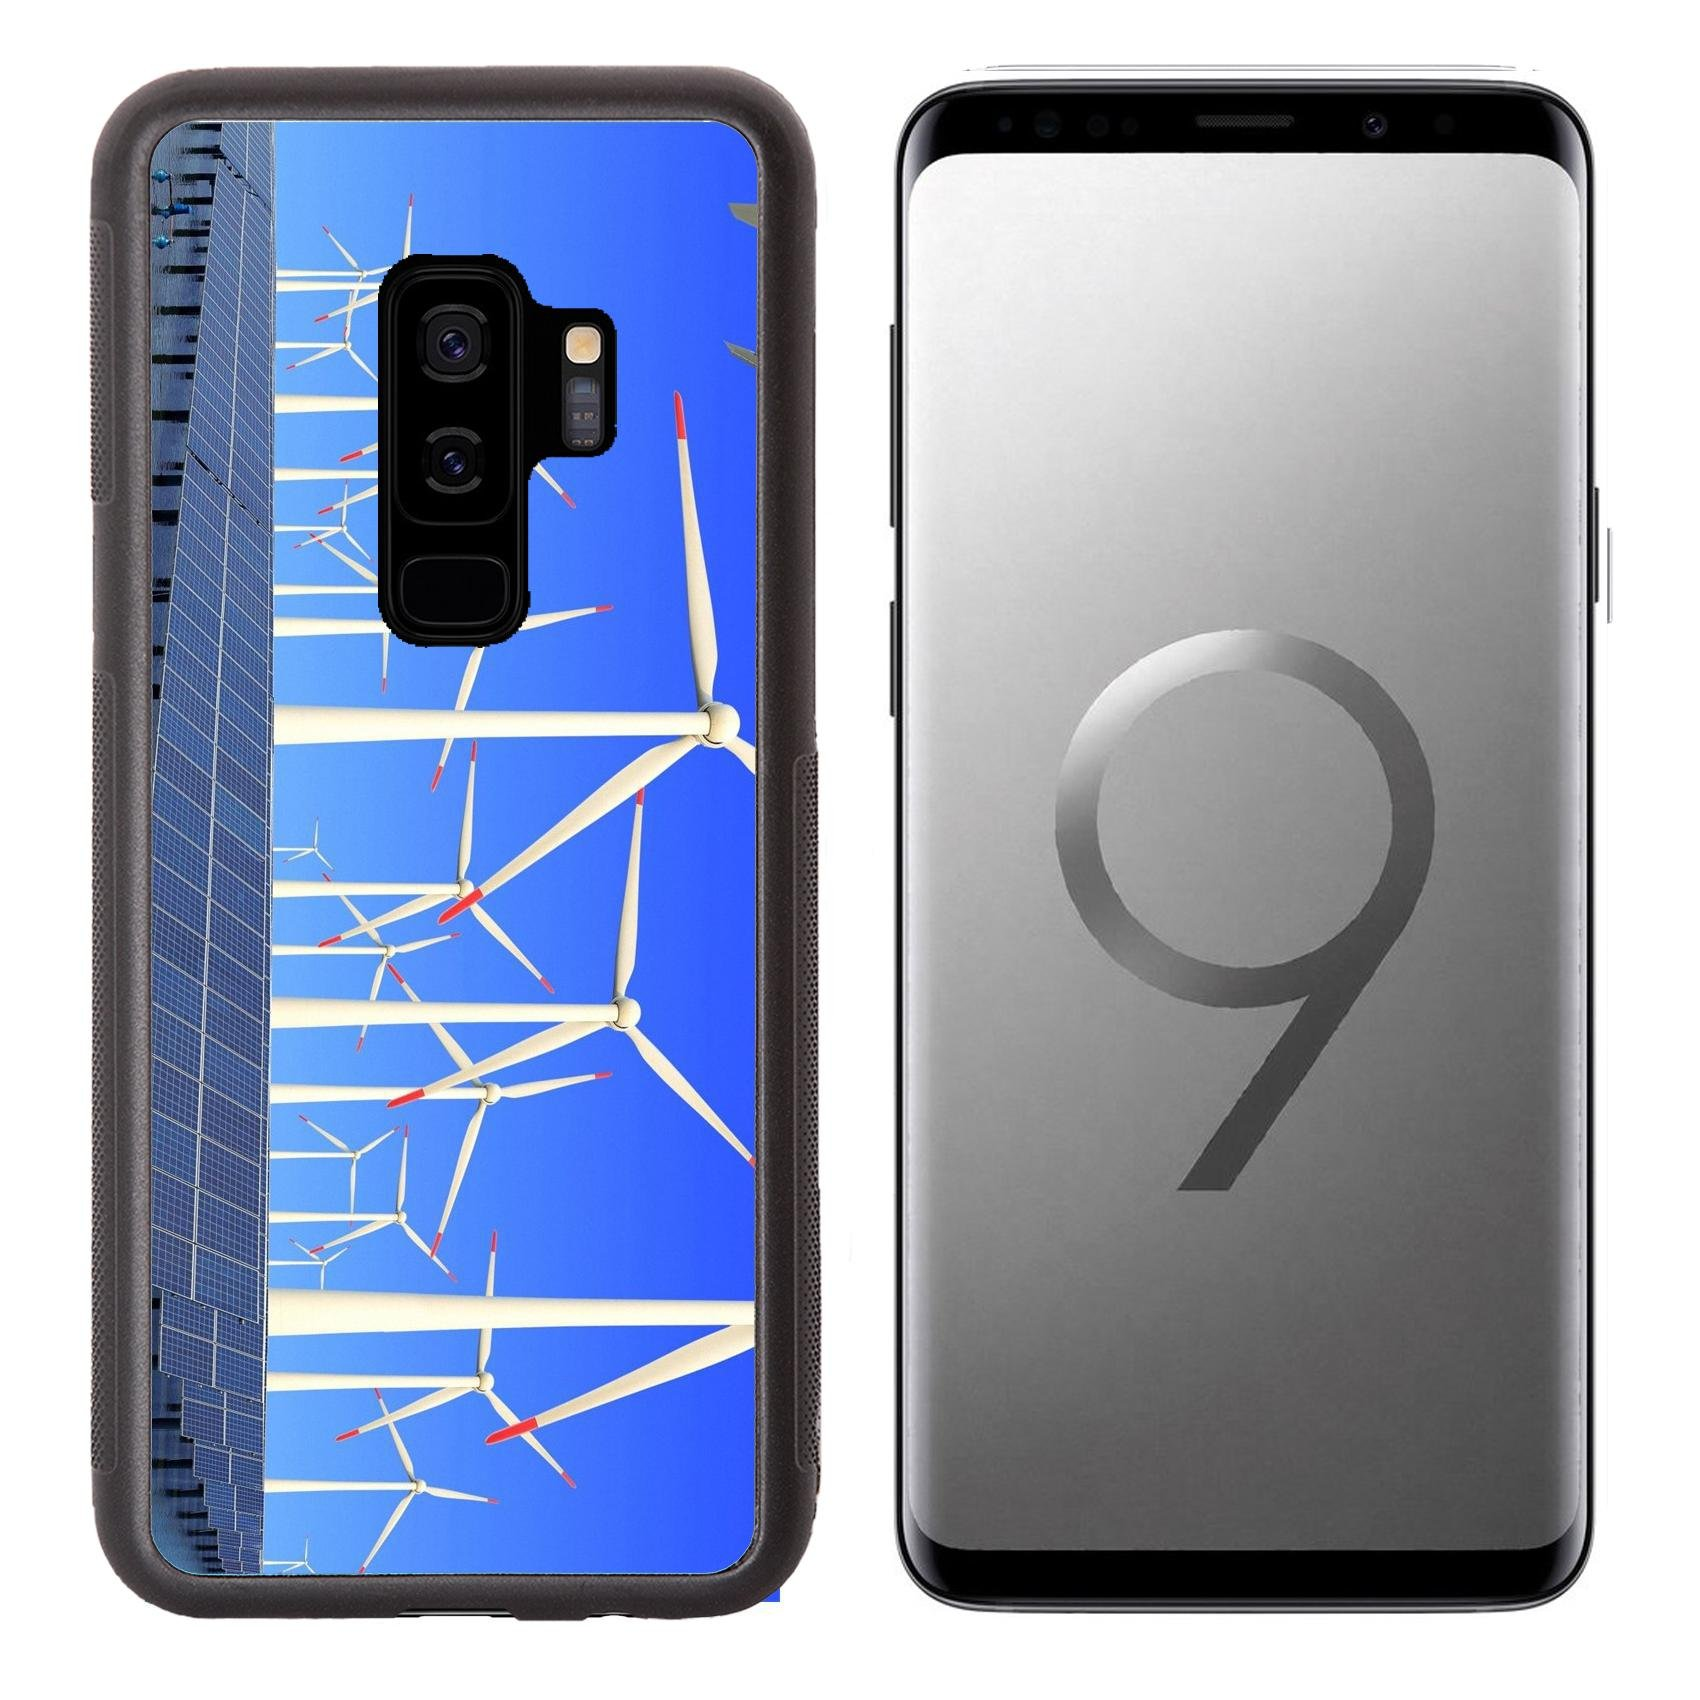 MSD Samsung Galaxy S9 plus Aluminum Backplate Bumper Snap Case IMAGE ID 19576484 Aircraft is flying in eco power of wind turbines and solar panel at c